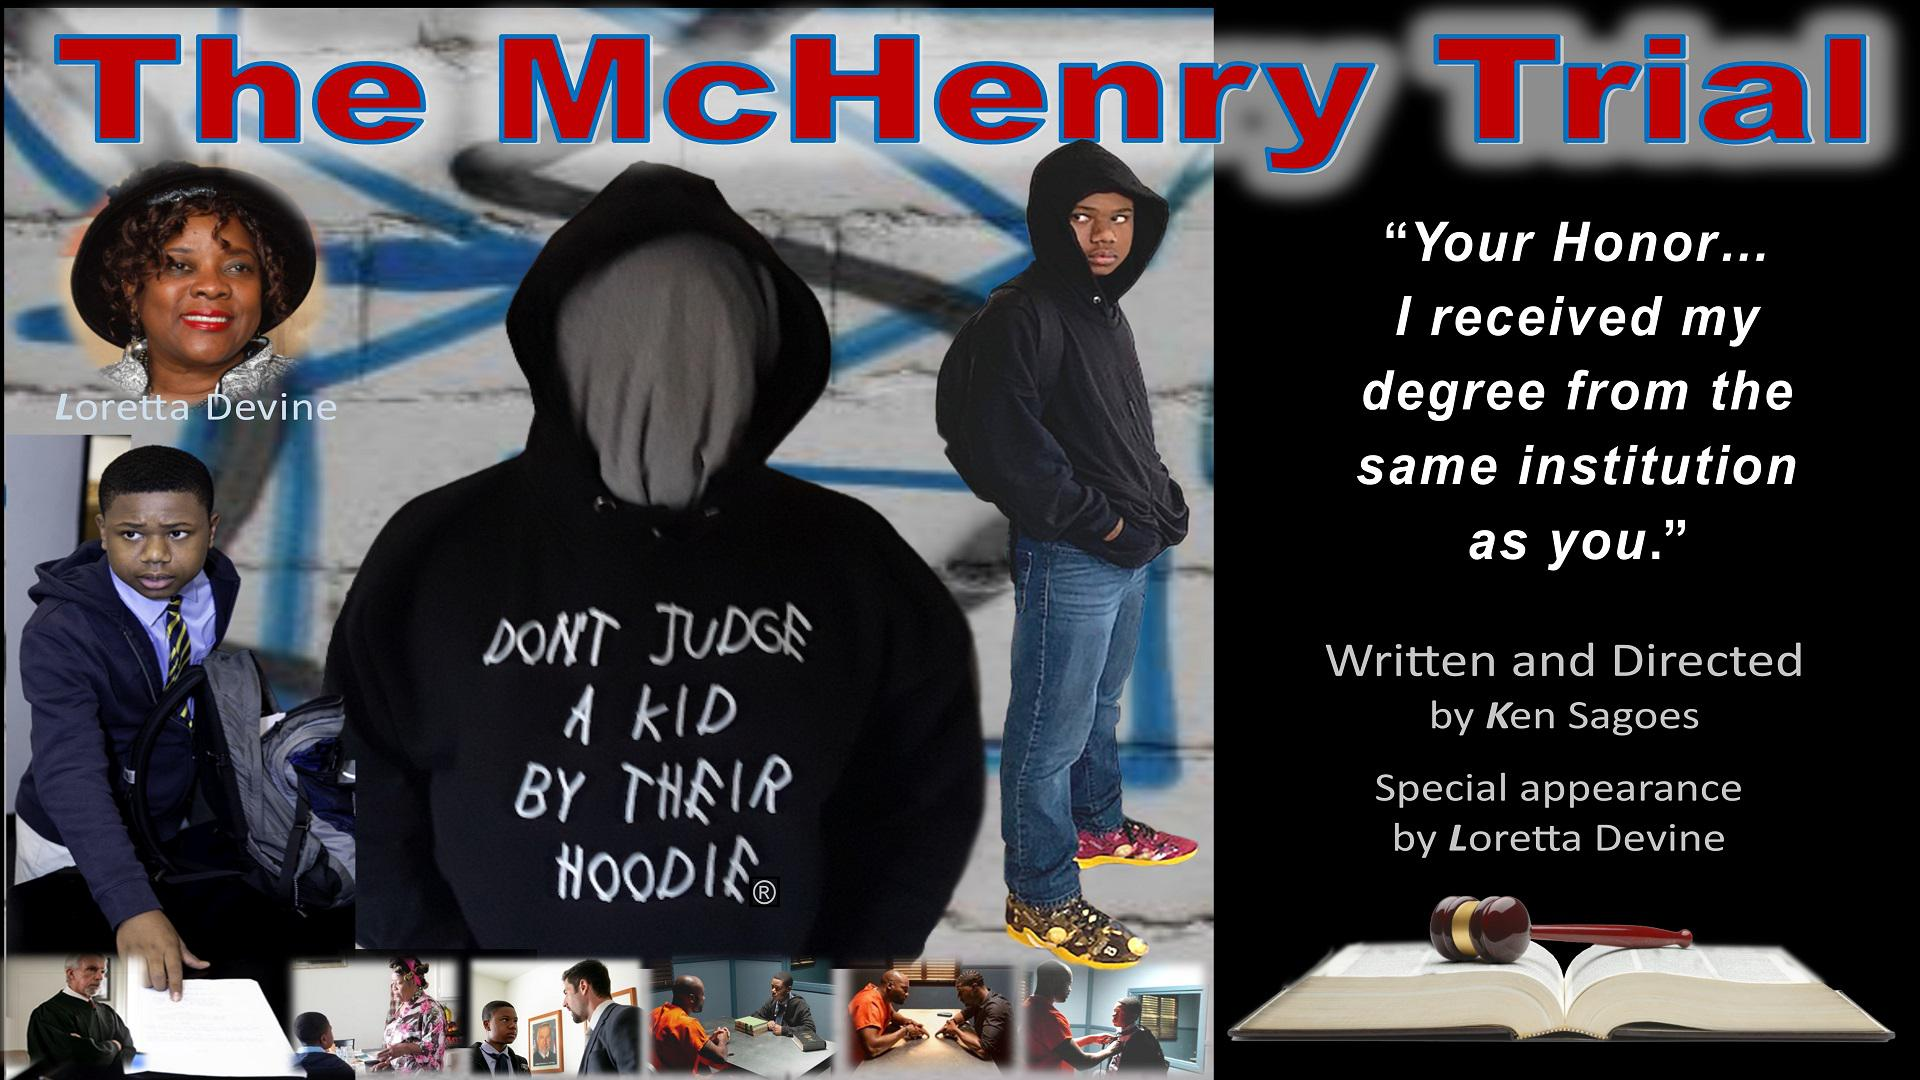 The McHenry Trial – Don't Judge a Kid by Their Hoodie